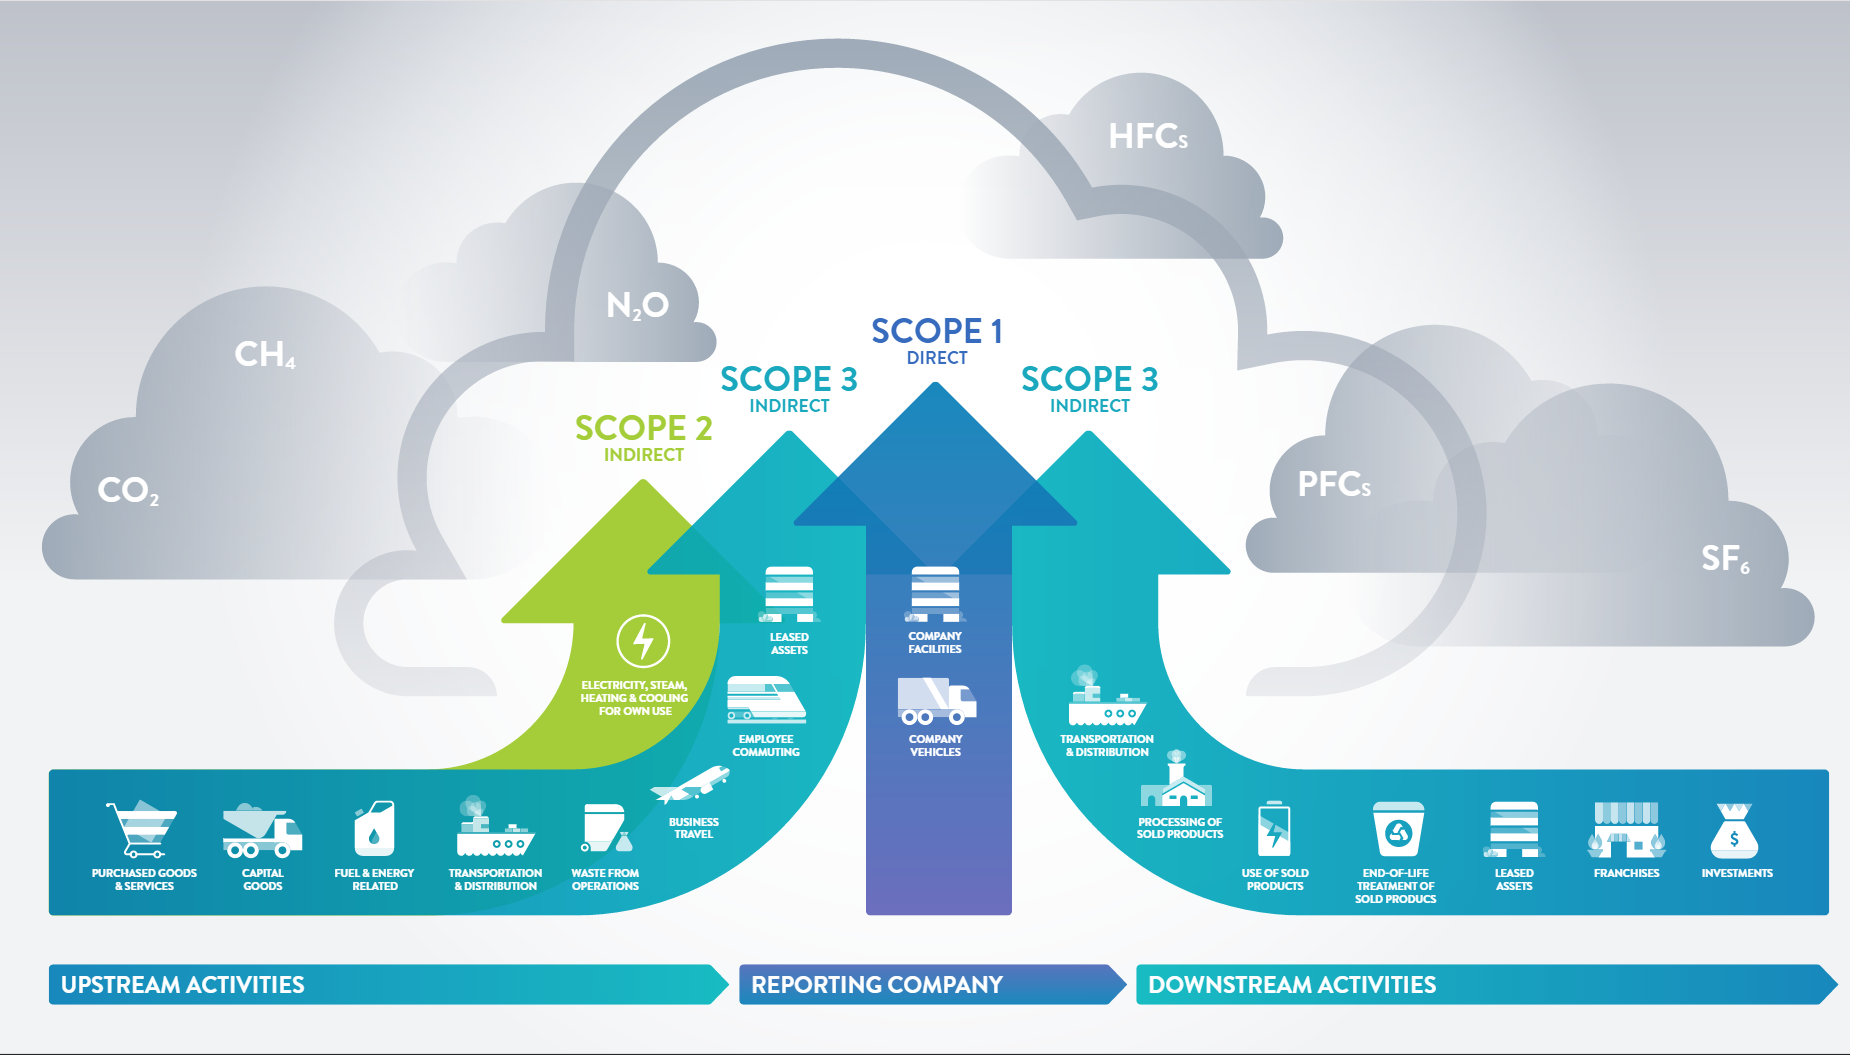 Overview of scope 1, 2, and 3 emissions